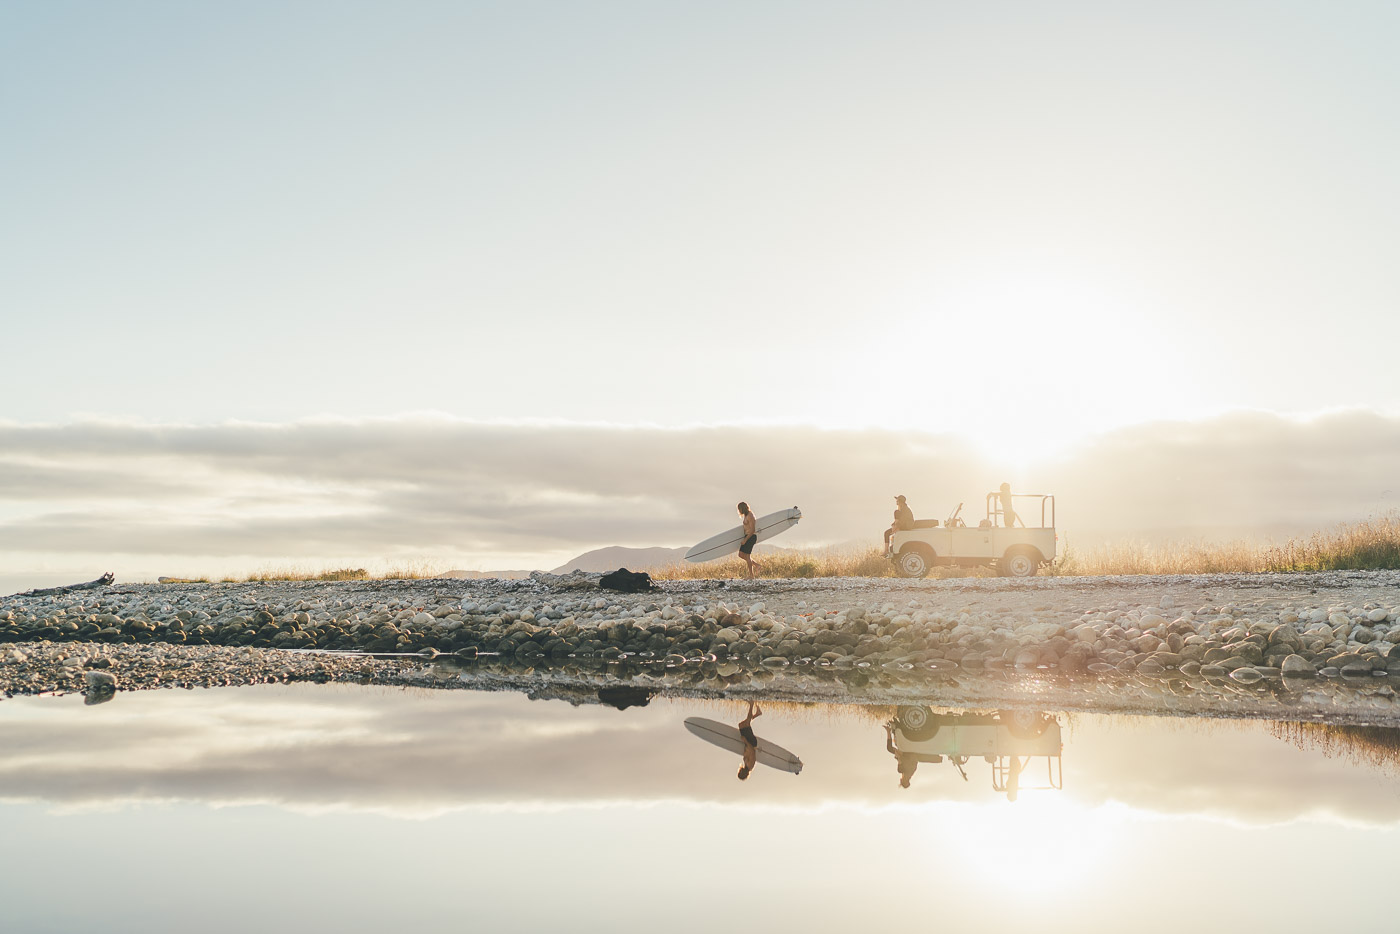 Reflection of Surfer carrying Surfboard from land Rover to the beach in New Zealand